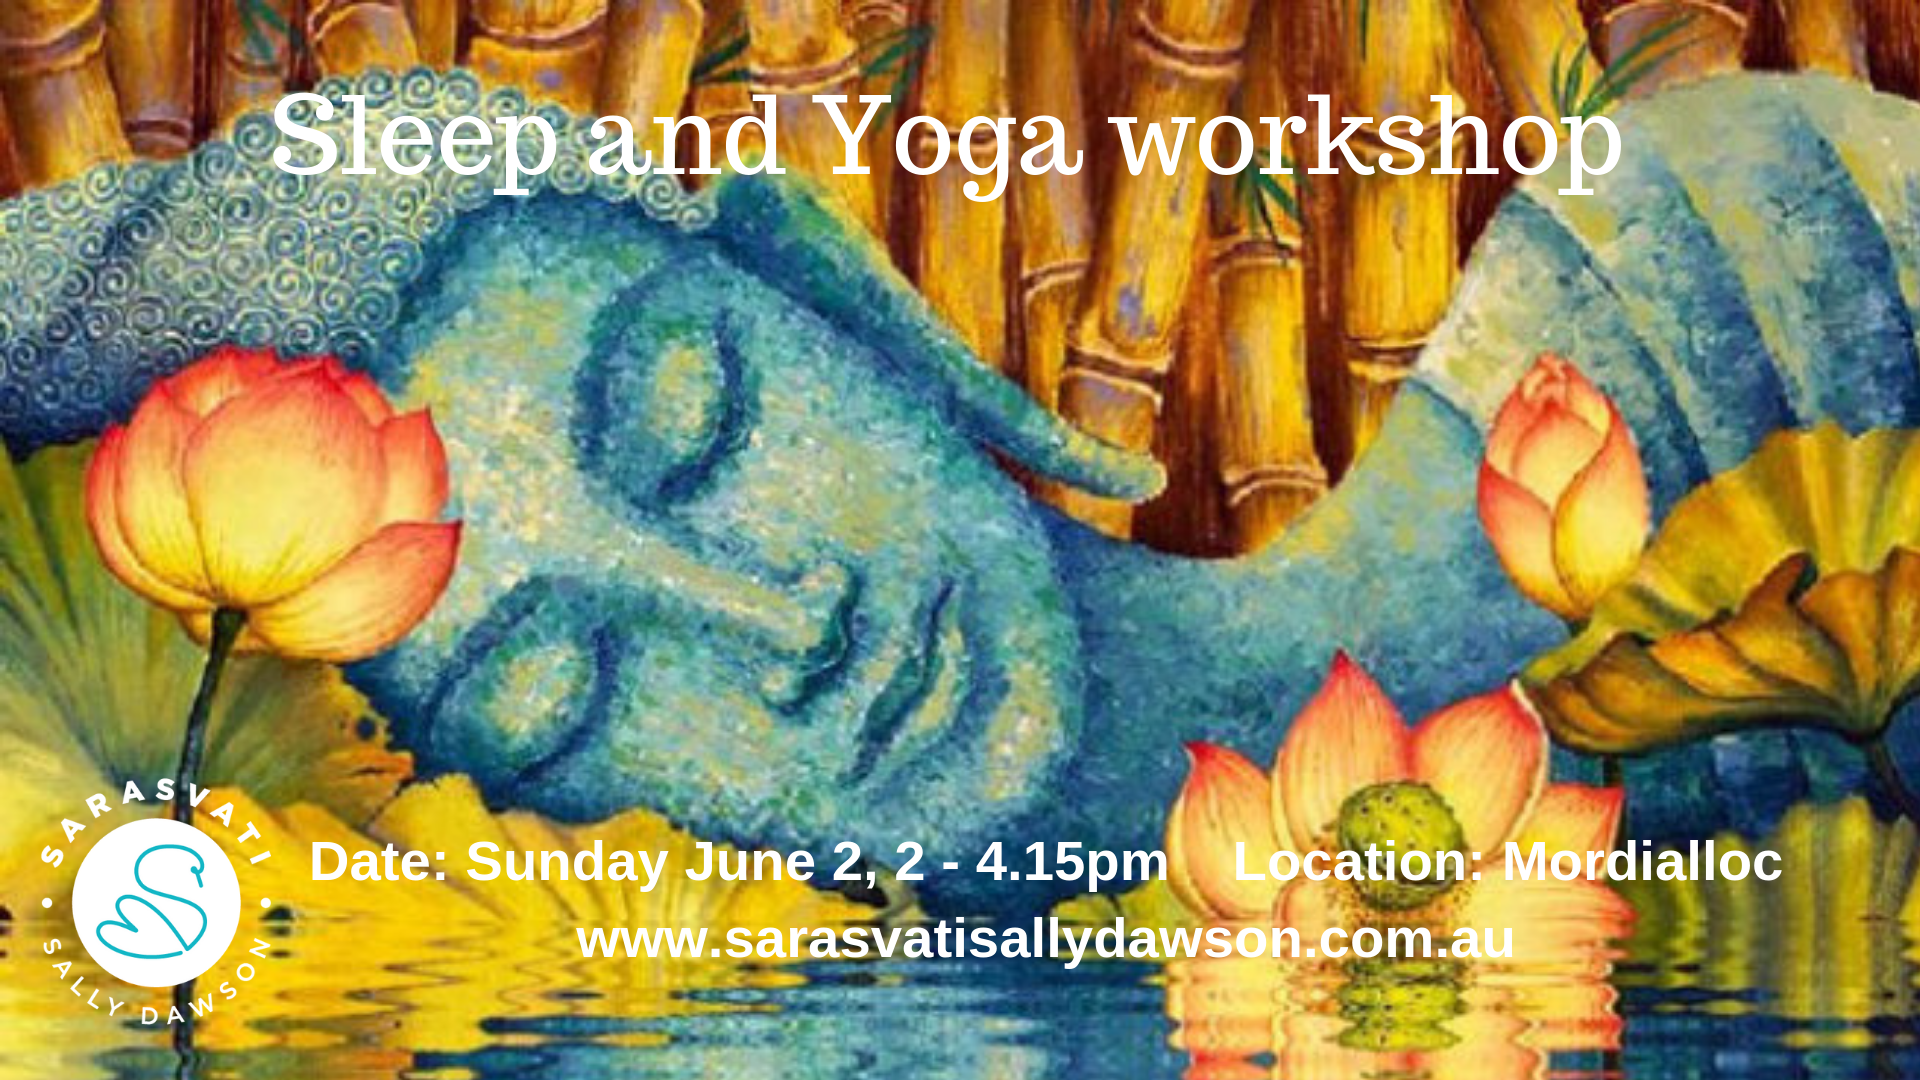 Mordialloc Masterclass Sleep and Yoga